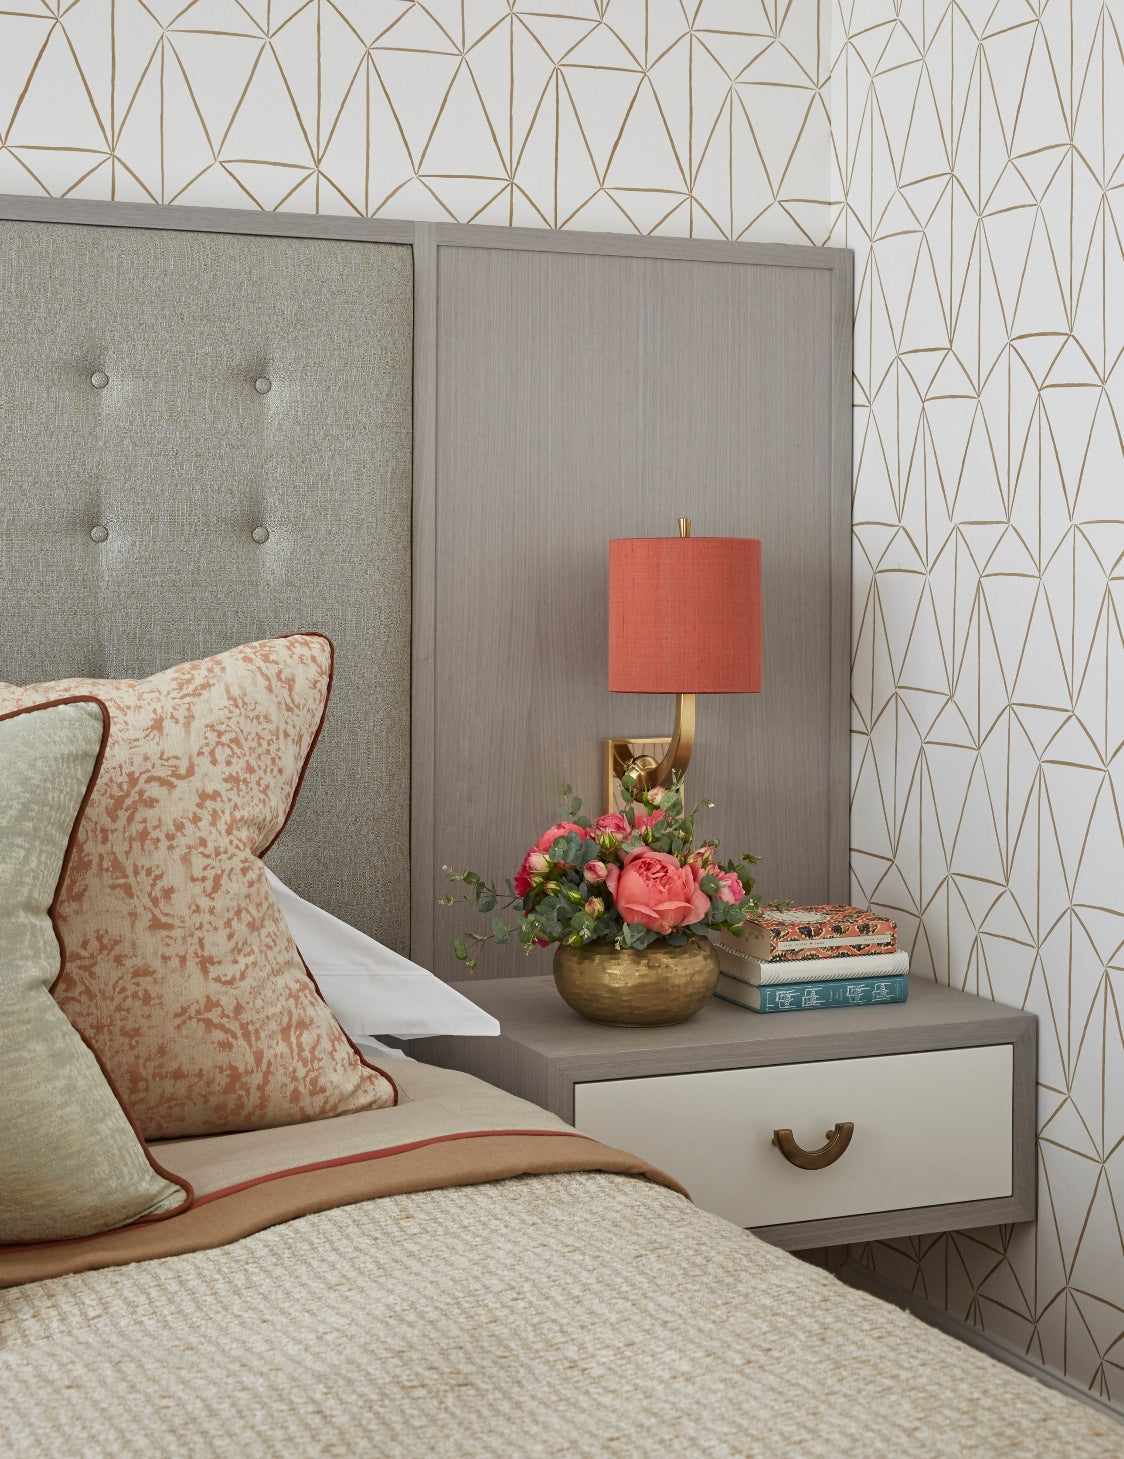 7 Ways To Decorate With Flowers In Your Home Interior - Helen Green - LuxDeco Style Guide